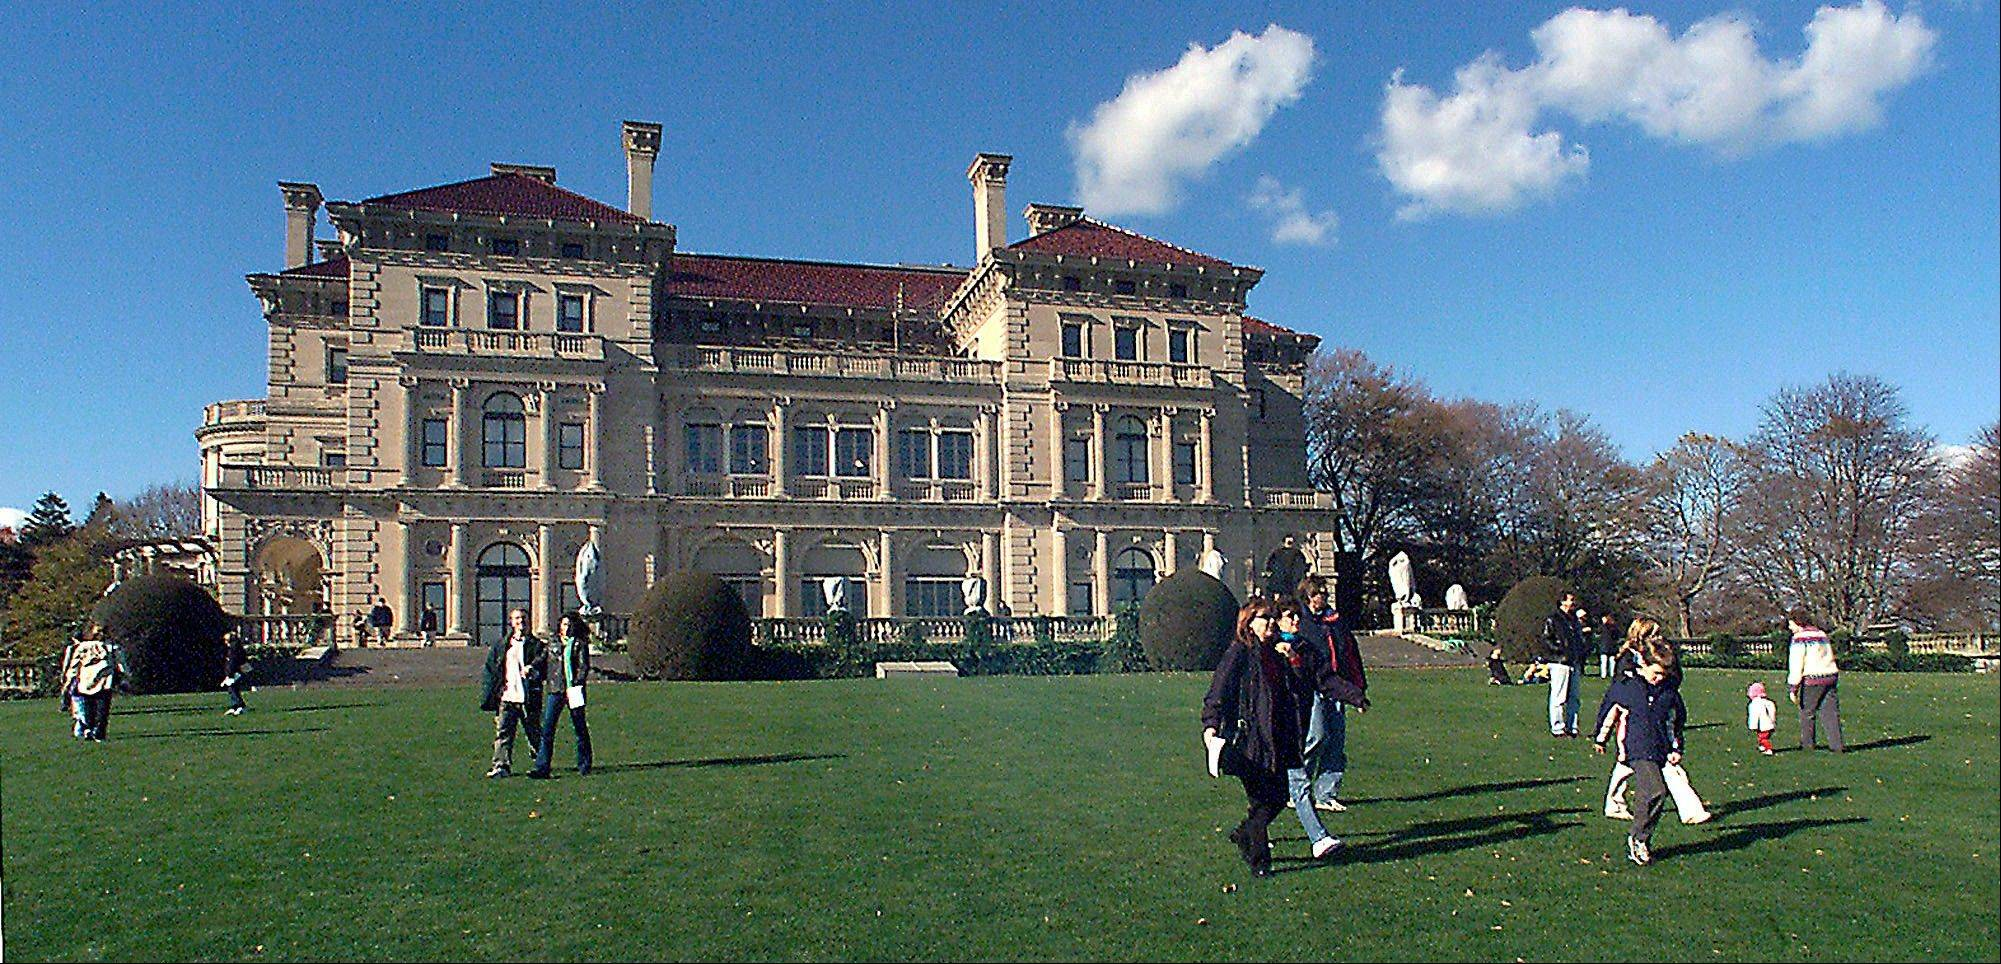 Visitors take advantage of free admission to tour The Breakers mansion in Newport, R.I. The Preservation Society of Newport County proposed building a visitor center in 2014 that would sit on the mansion's grounds. The society said it would be unobtrusive and would provide necessary services that currently are lacking at the popular tourist attraction. Some nearby residents are fighting the plan.